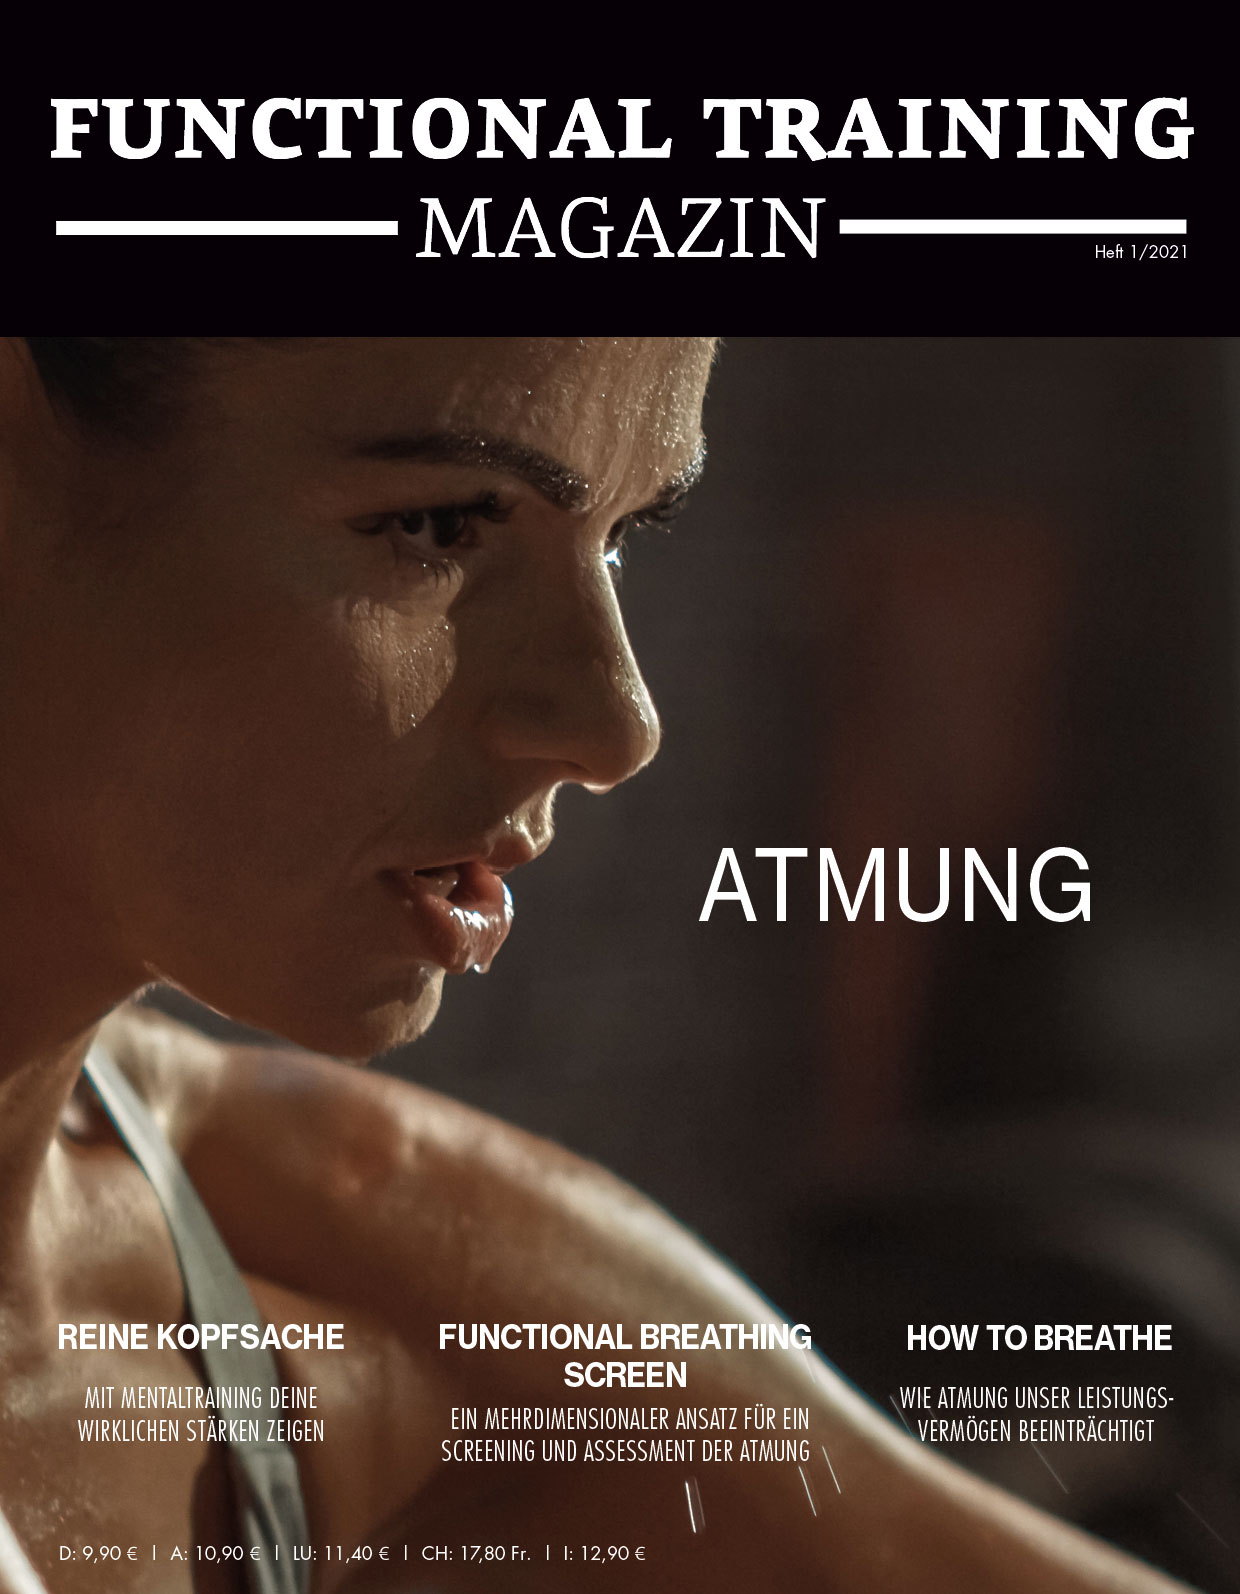 functional-training-magazin-cover-atmung-1-2021-klein